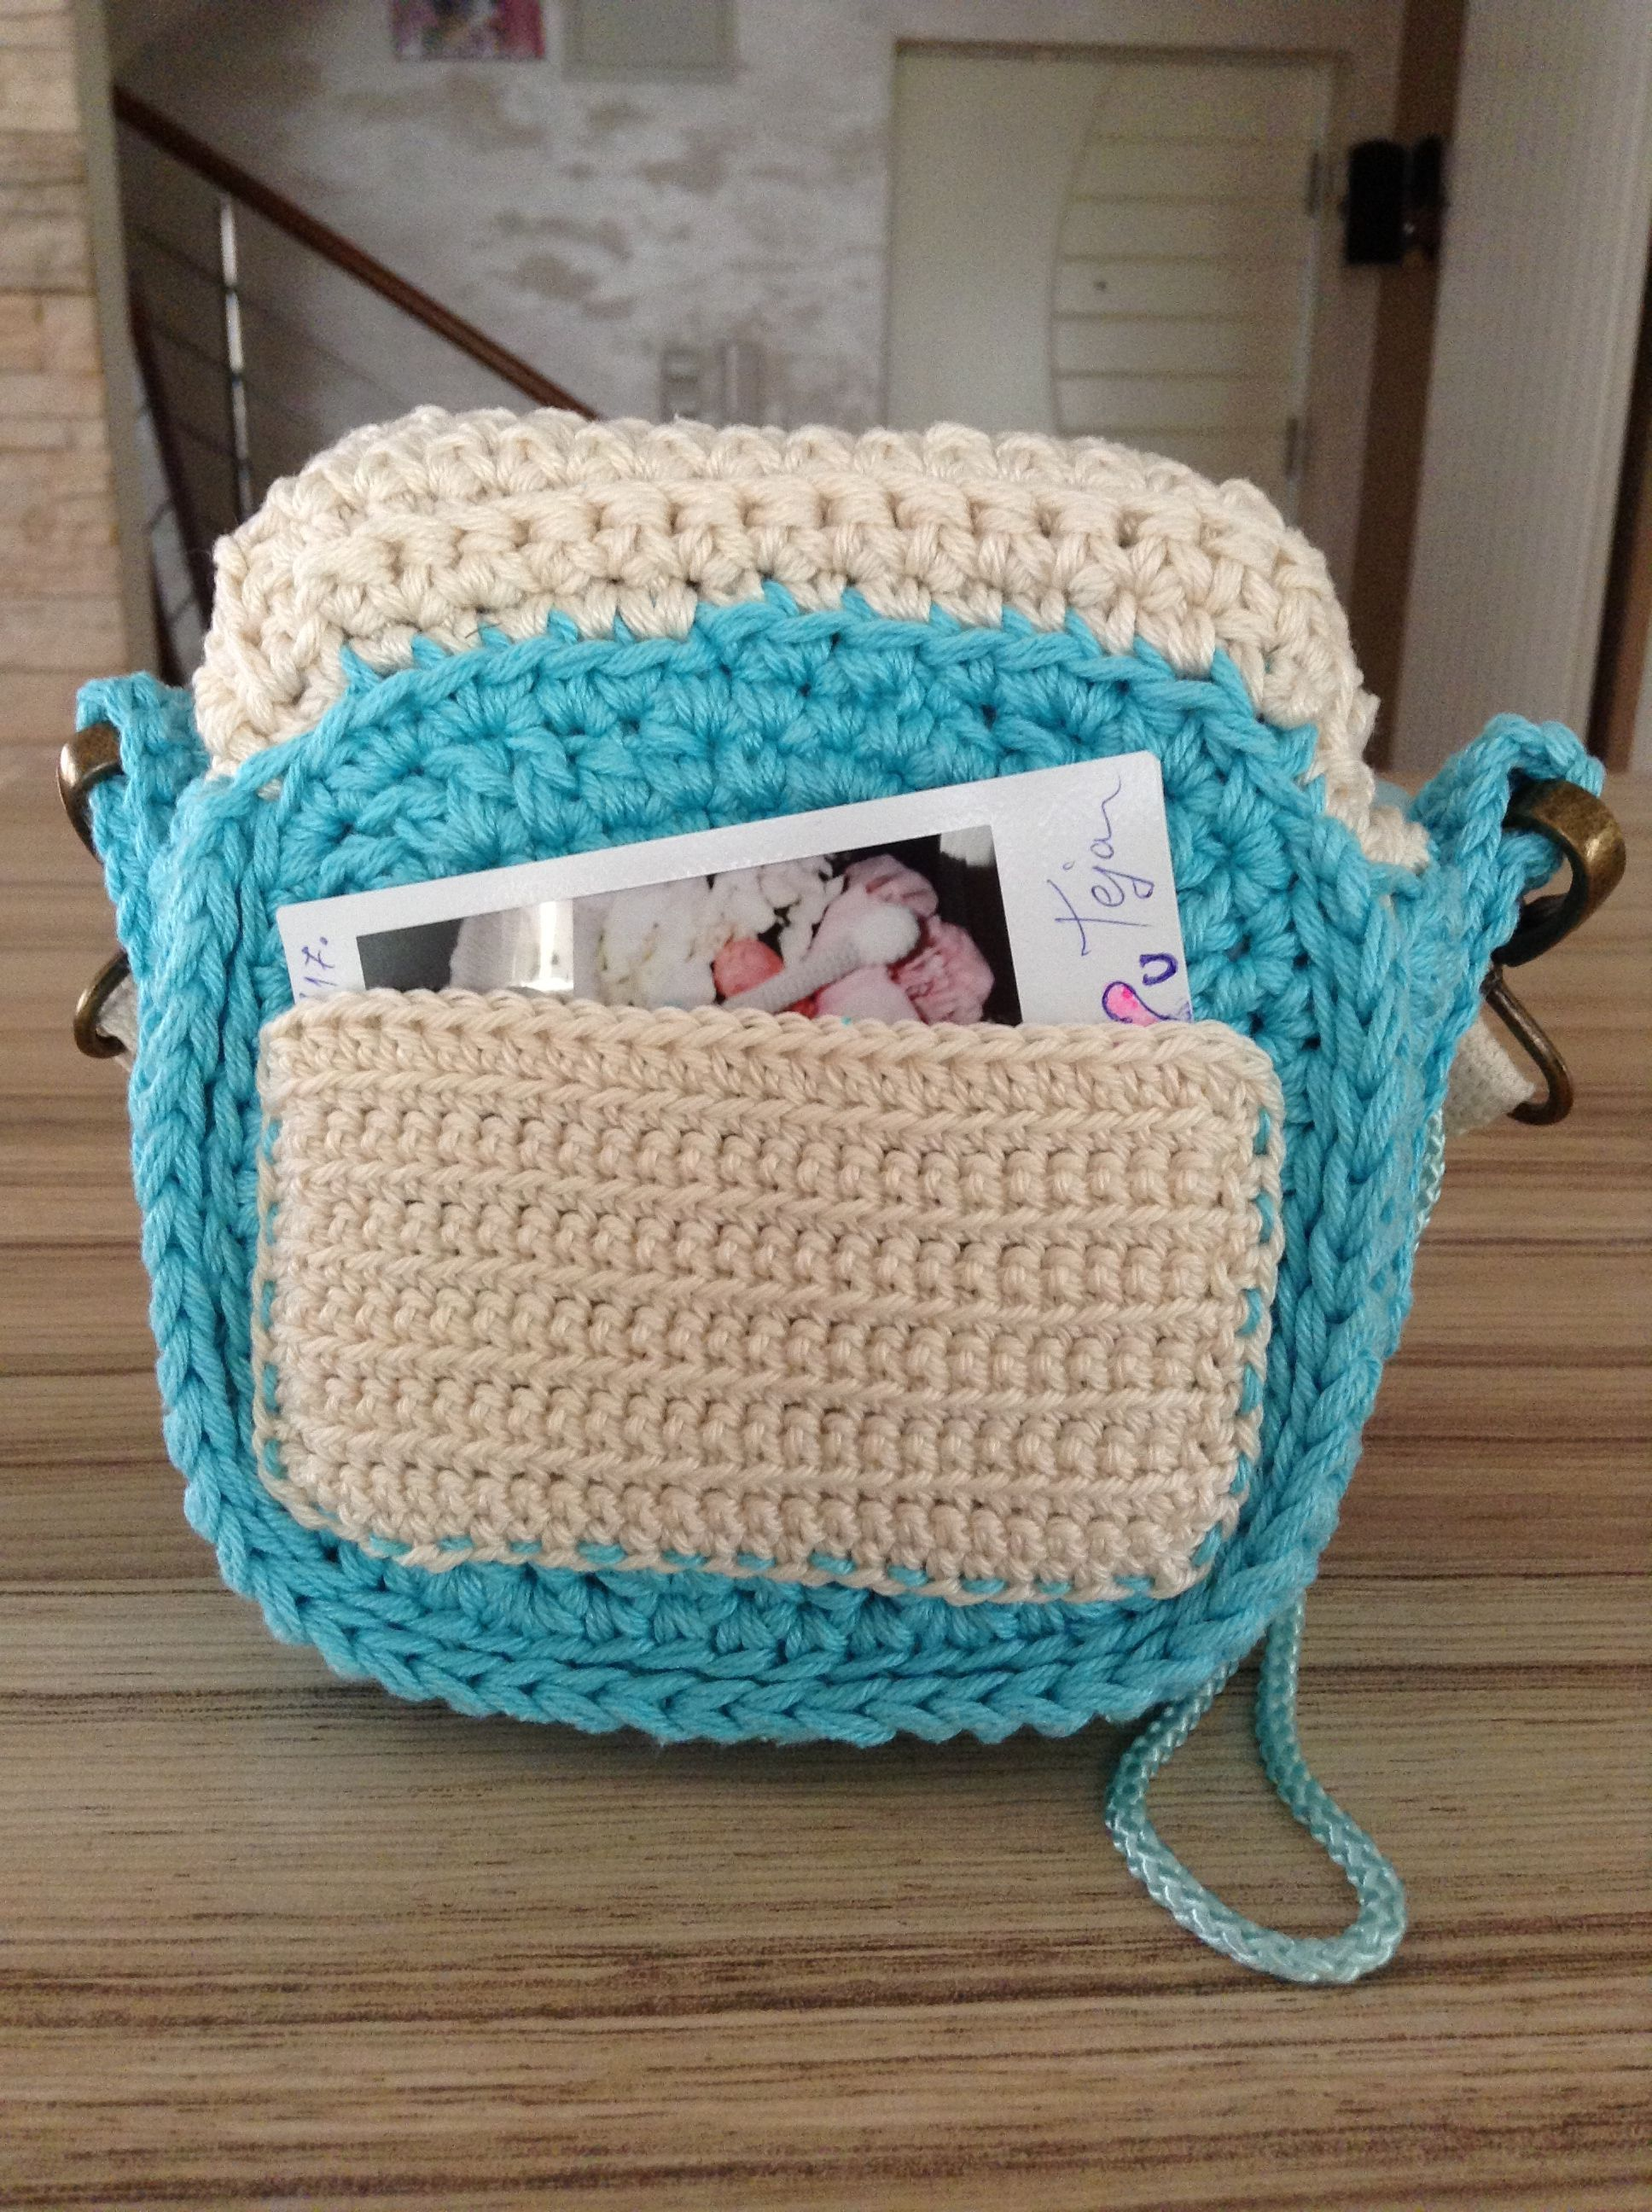 Instax mini 8 crochet camera bag by Milena Jovicic #crochetcamera Instax mini 8 crochet camera bag by Milena Jovicic #crochetcamera Instax mini 8 crochet camera bag by Milena Jovicic #crochetcamera Instax mini 8 crochet camera bag by Milena Jovicic #crochetcamera Instax mini 8 crochet camera bag by Milena Jovicic #crochetcamera Instax mini 8 crochet camera bag by Milena Jovicic #crochetcamera Instax mini 8 crochet camera bag by Milena Jovicic #crochetcamera Instax mini 8 crochet camera bag by Mi #crochetcamera